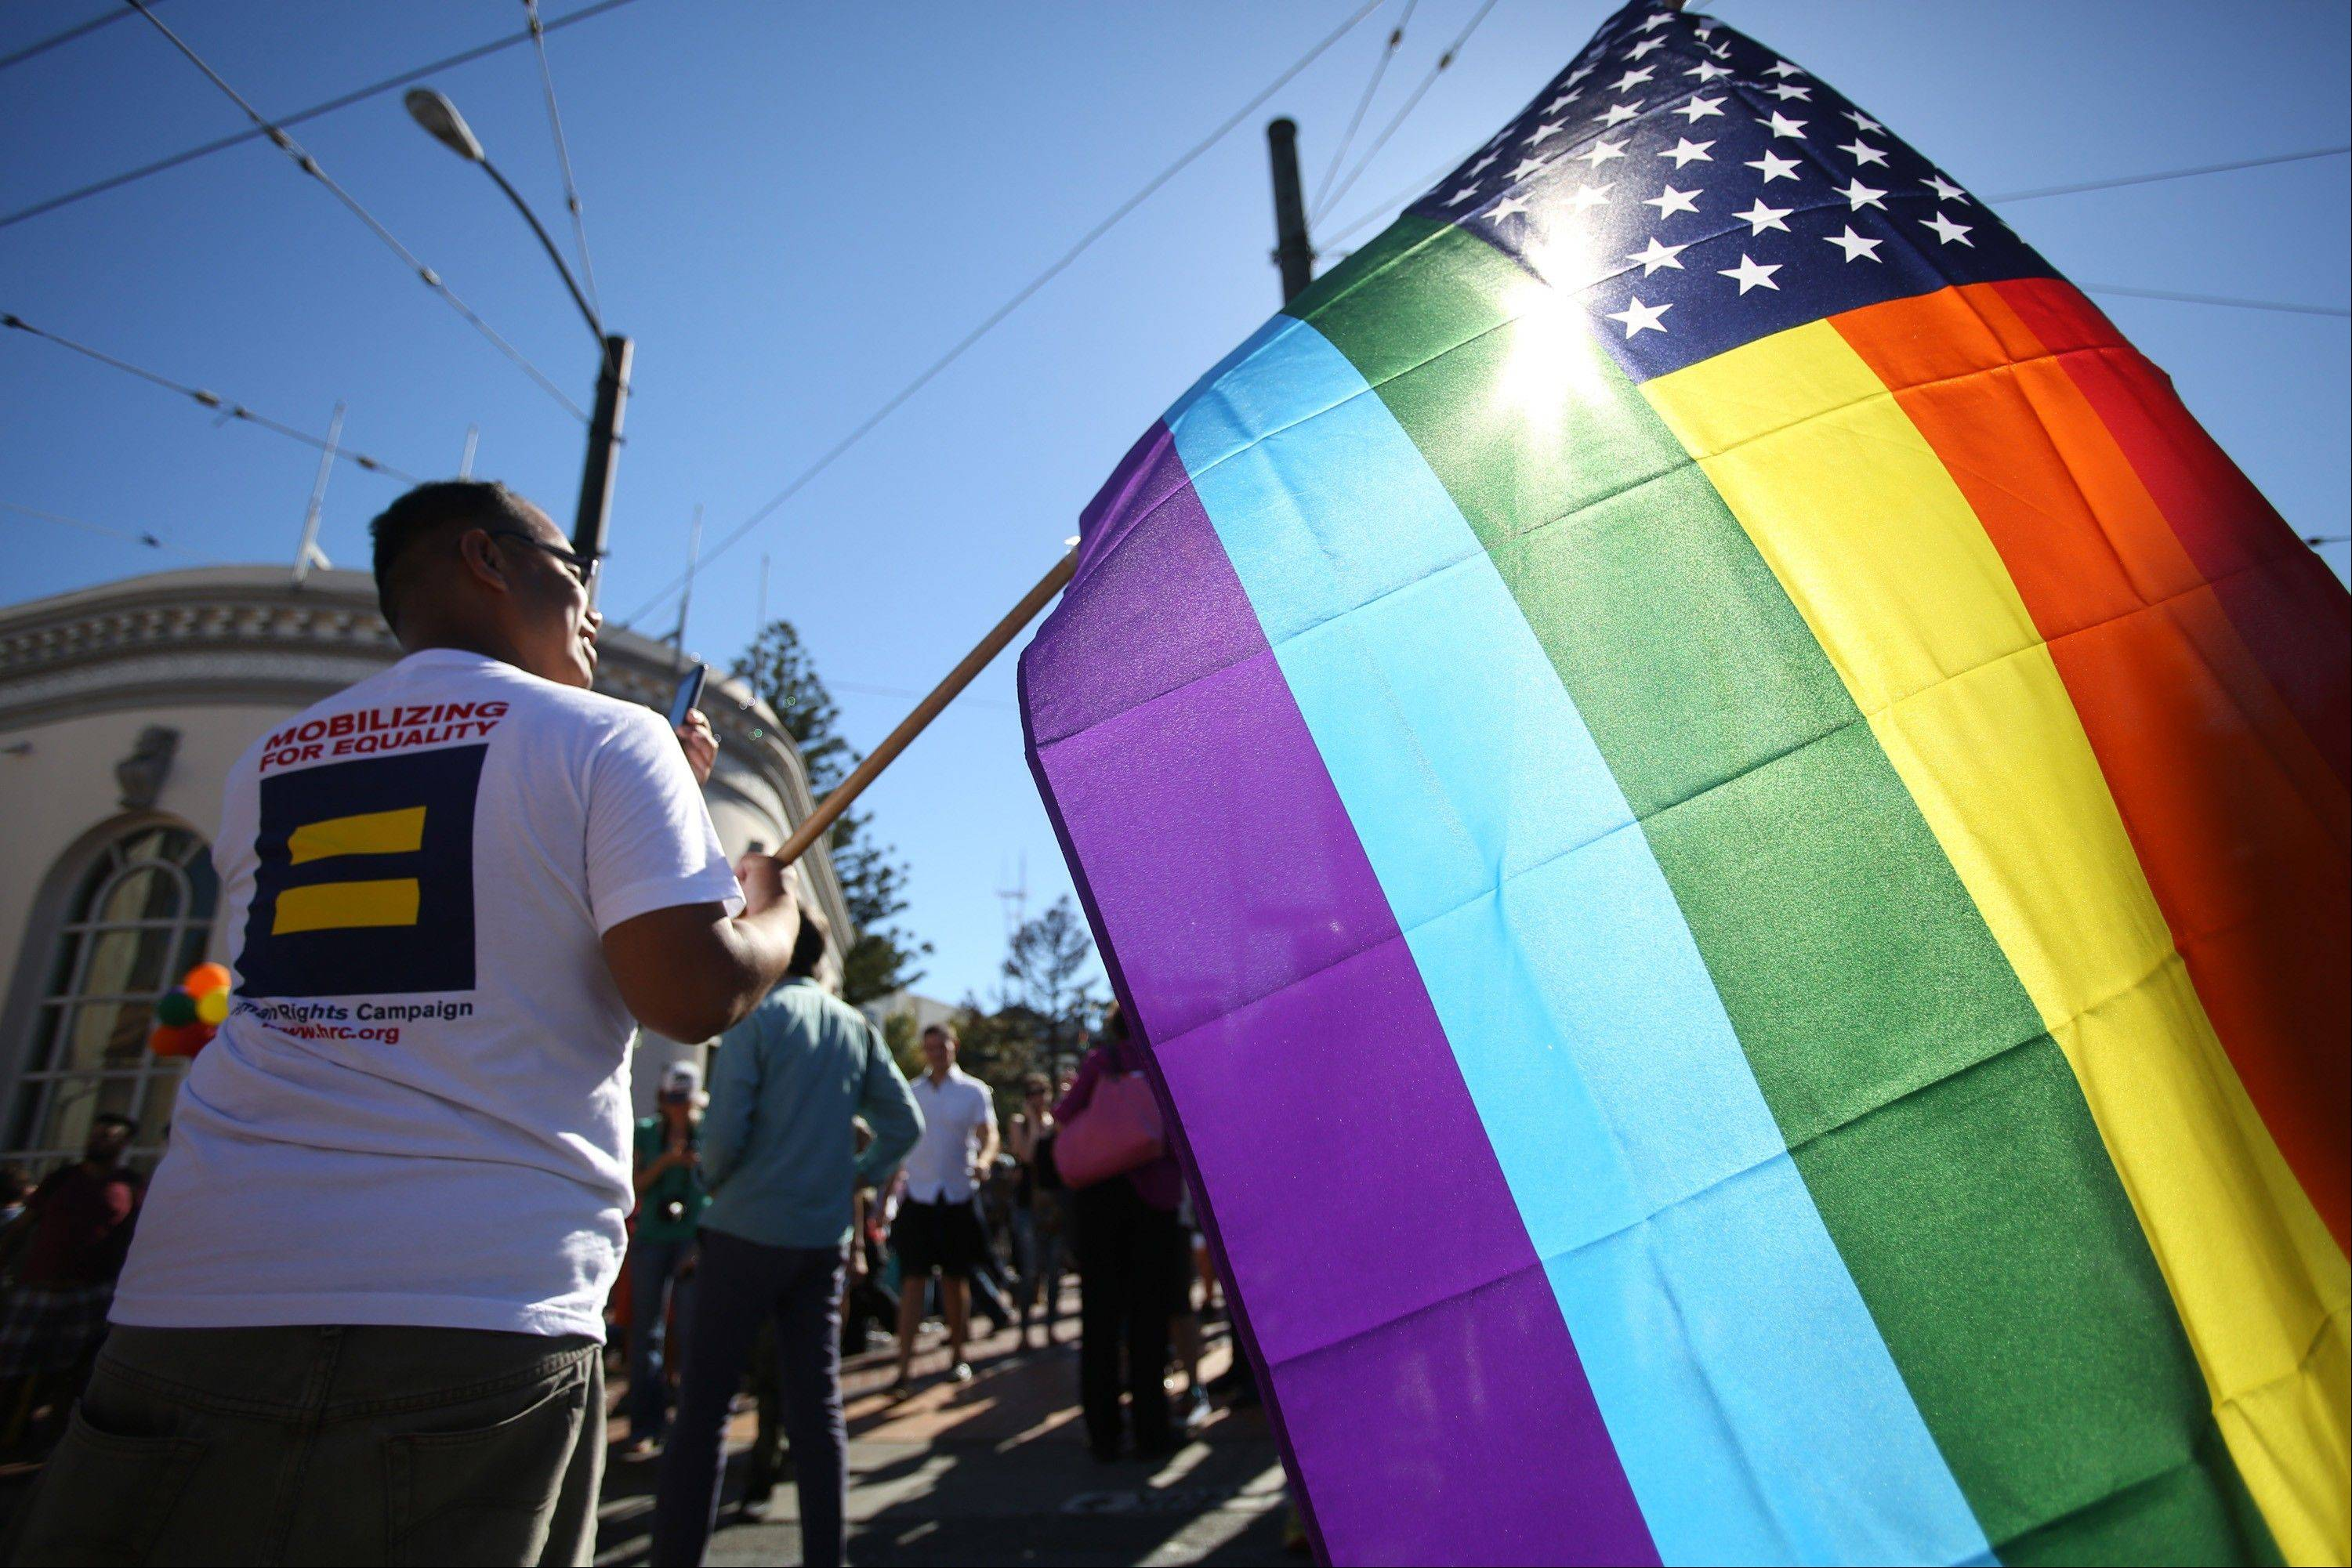 Larry Pascua carries a rainbow flag at a celebration for the U. S. Supreme Court's rulings on Prop. 8 and the Defense of Marriage Act in the Castro District in San Francisco, on Wednesday, June 26, 2013.